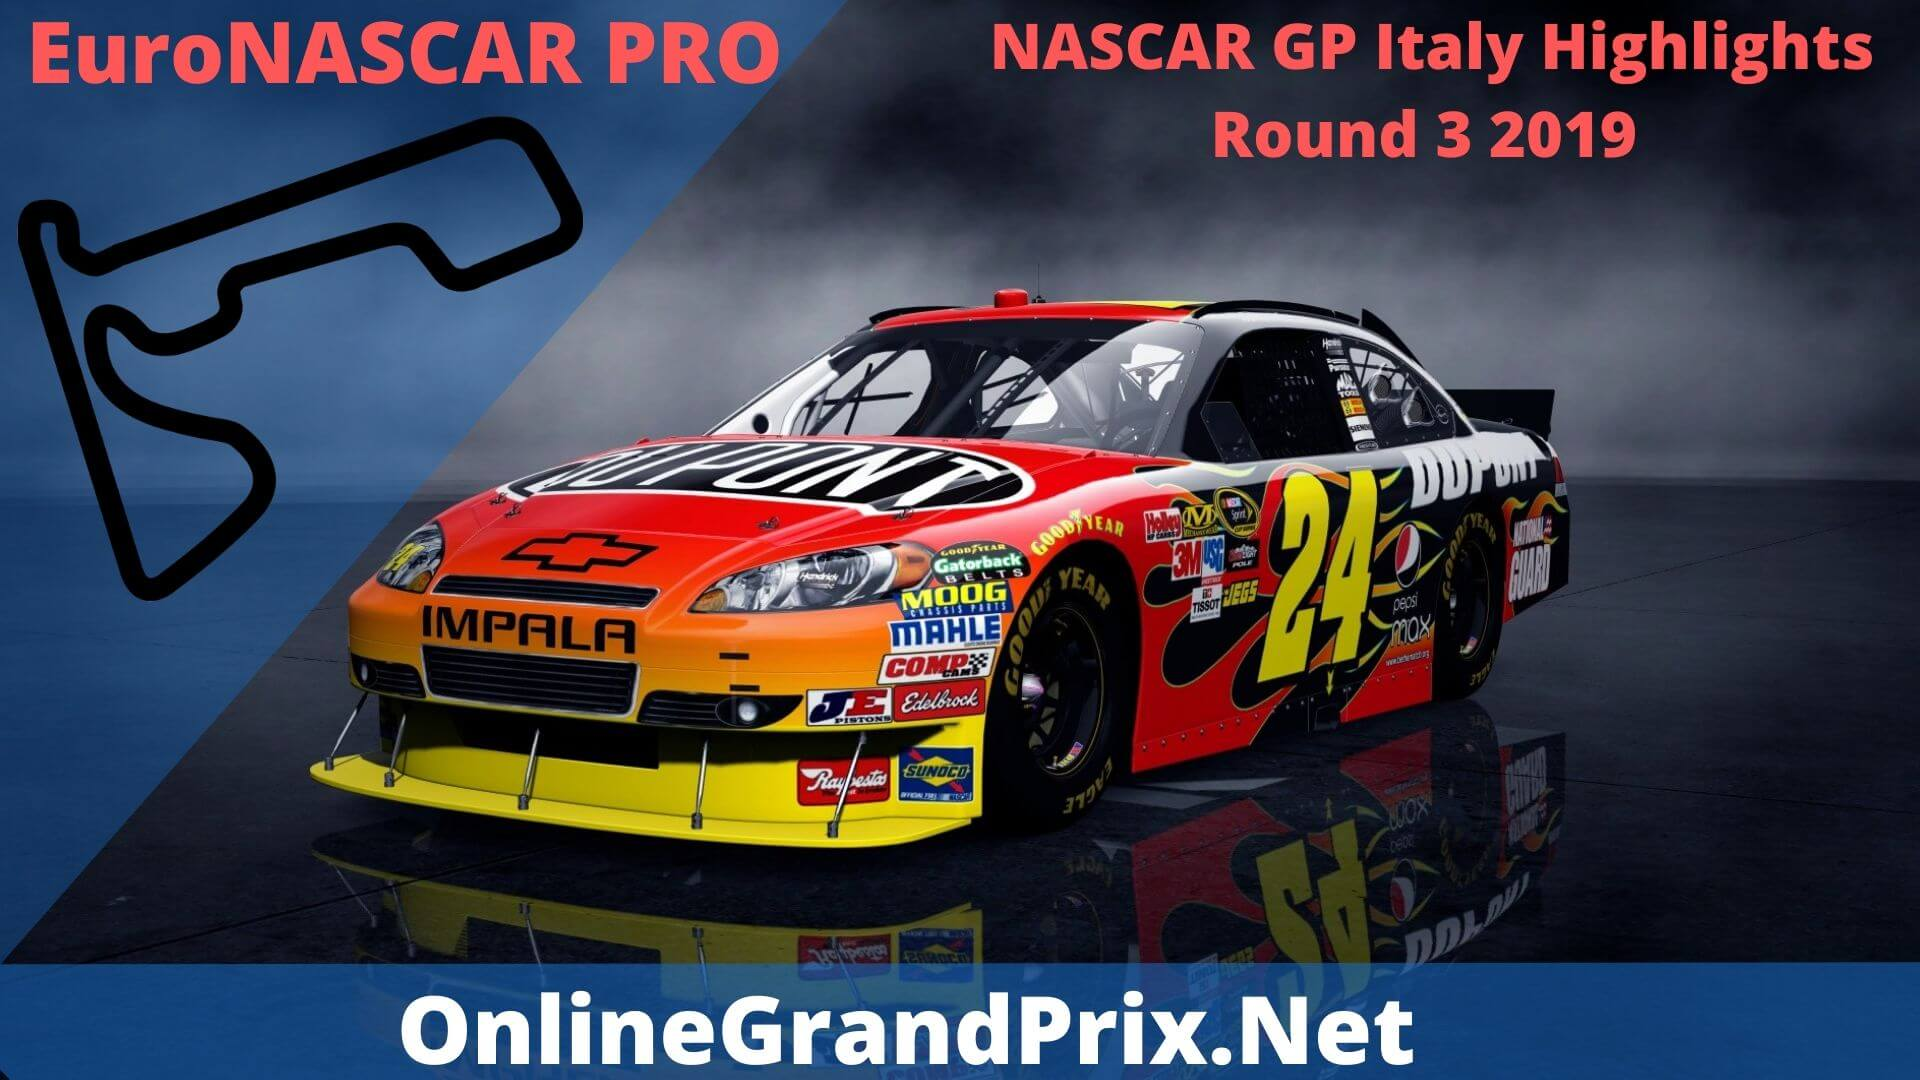 NASCAR GP Italy Round 3 Highlights 2019